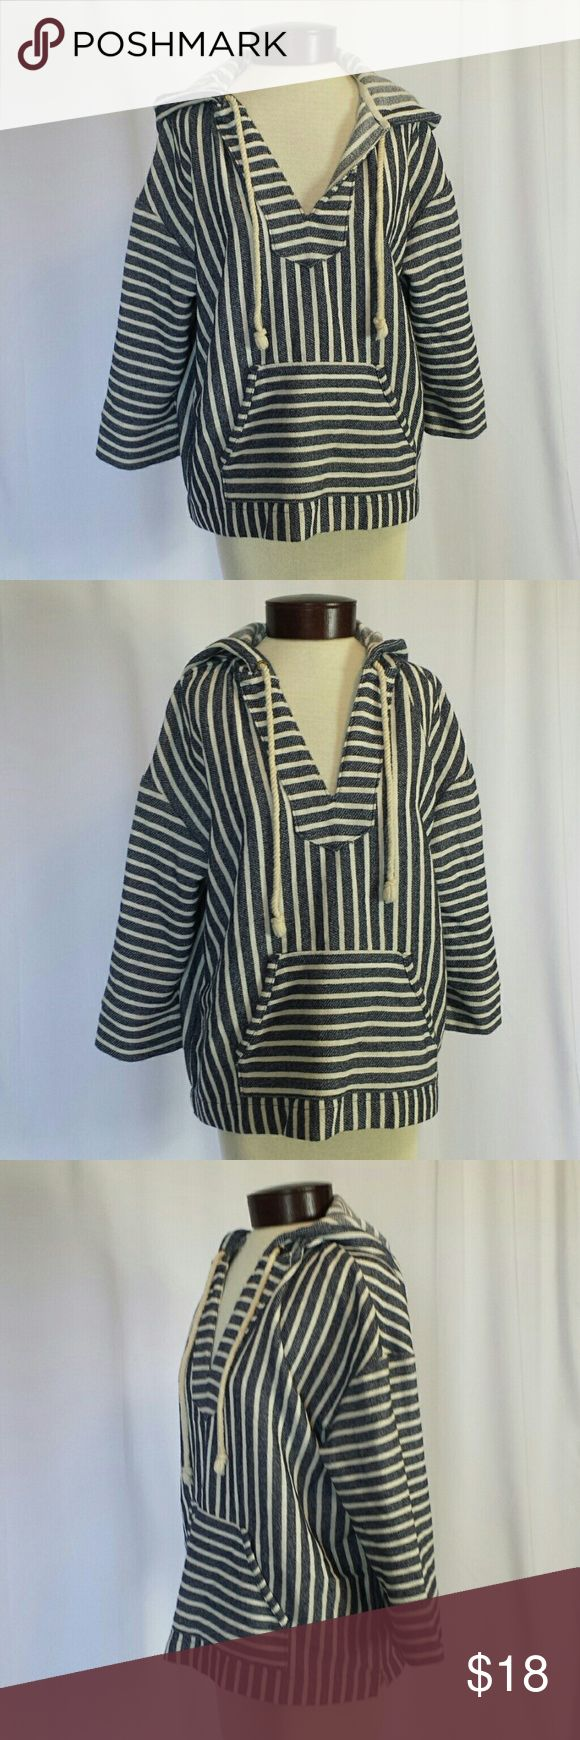 J.CREW Nautical Beachy Boho Top This adorable J.CREW Nautical Beachy Boho Top is perfect for festivals, beach bond fires, or sailing away!  By J.CREW Size M (meant to be slouchy, not fitted) Excellent condition  Never worn  Measurements  25 long 46 inch bust   Cotton Poly blend Tops